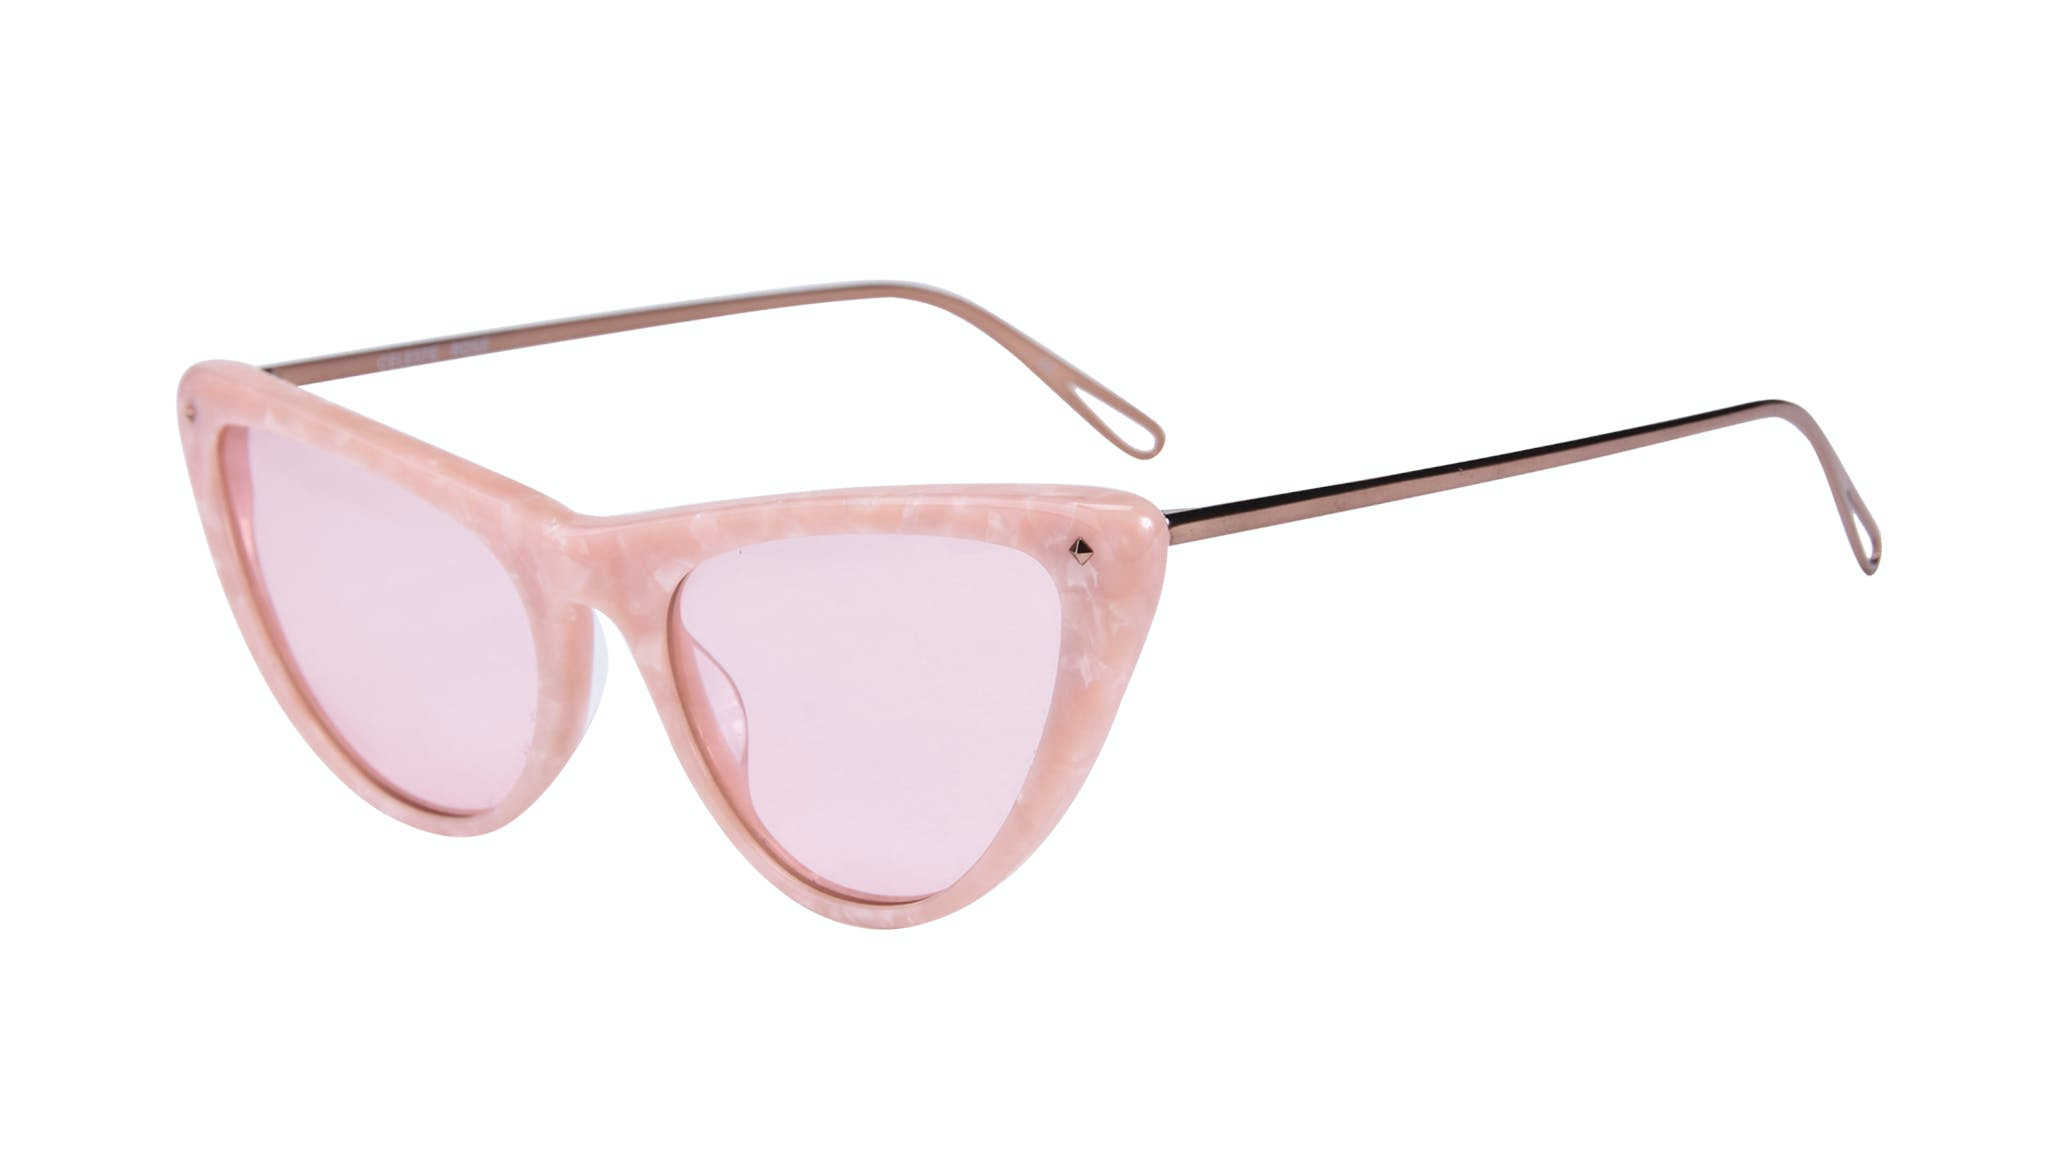 Affordable Fashion Glasses Cat Eye Sunglasses Women Celeste Rose Tilt